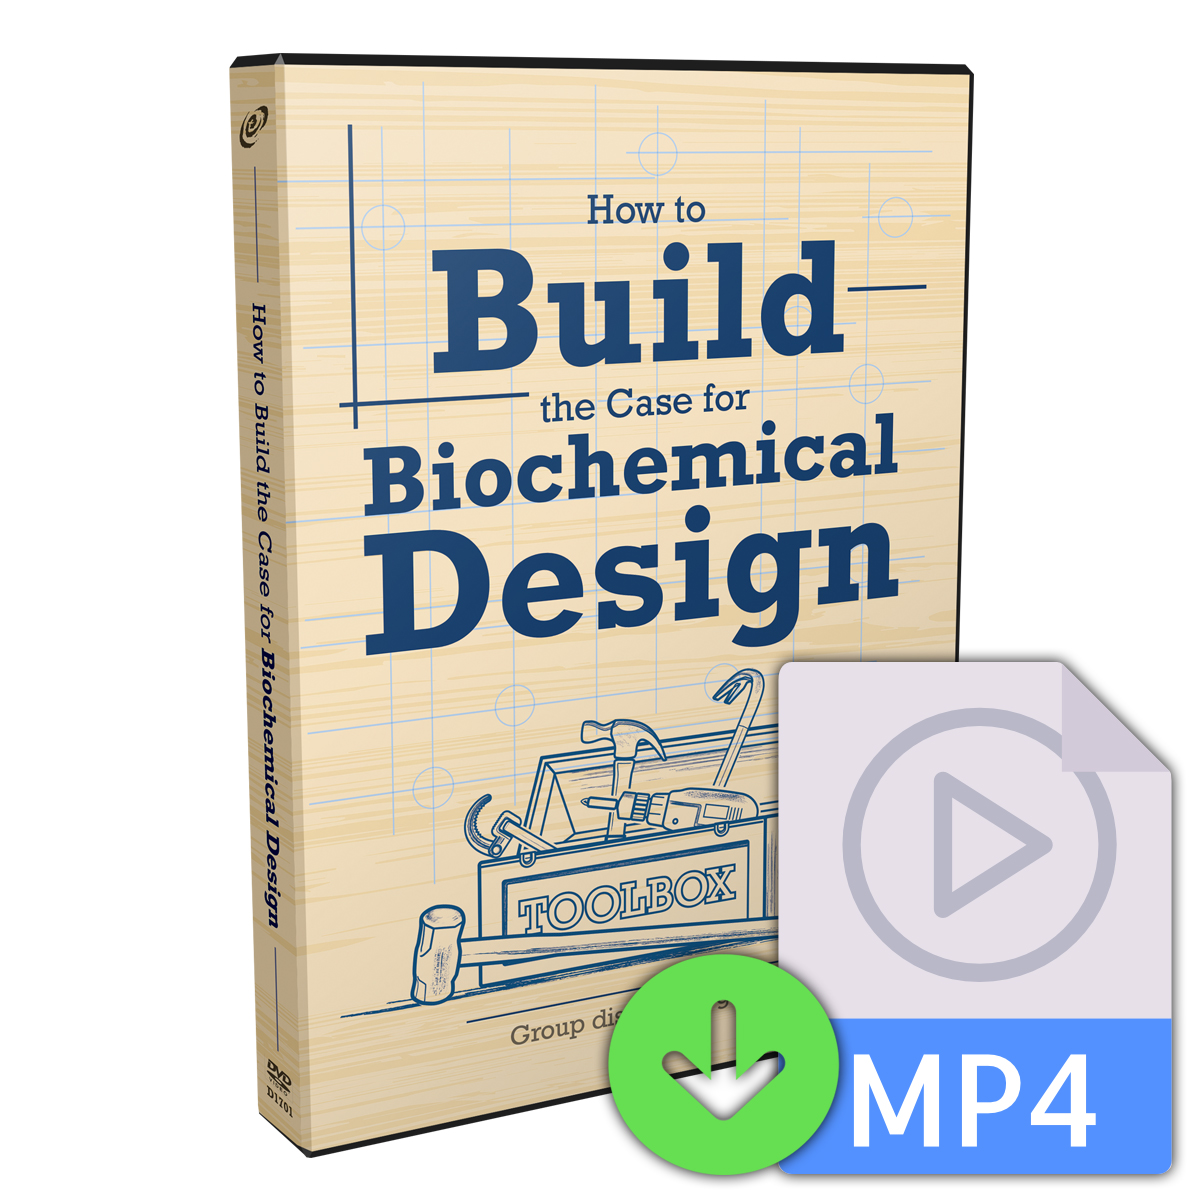 How to Build the Case for Biochemical Design – Full Version [Downloadable Video] Image